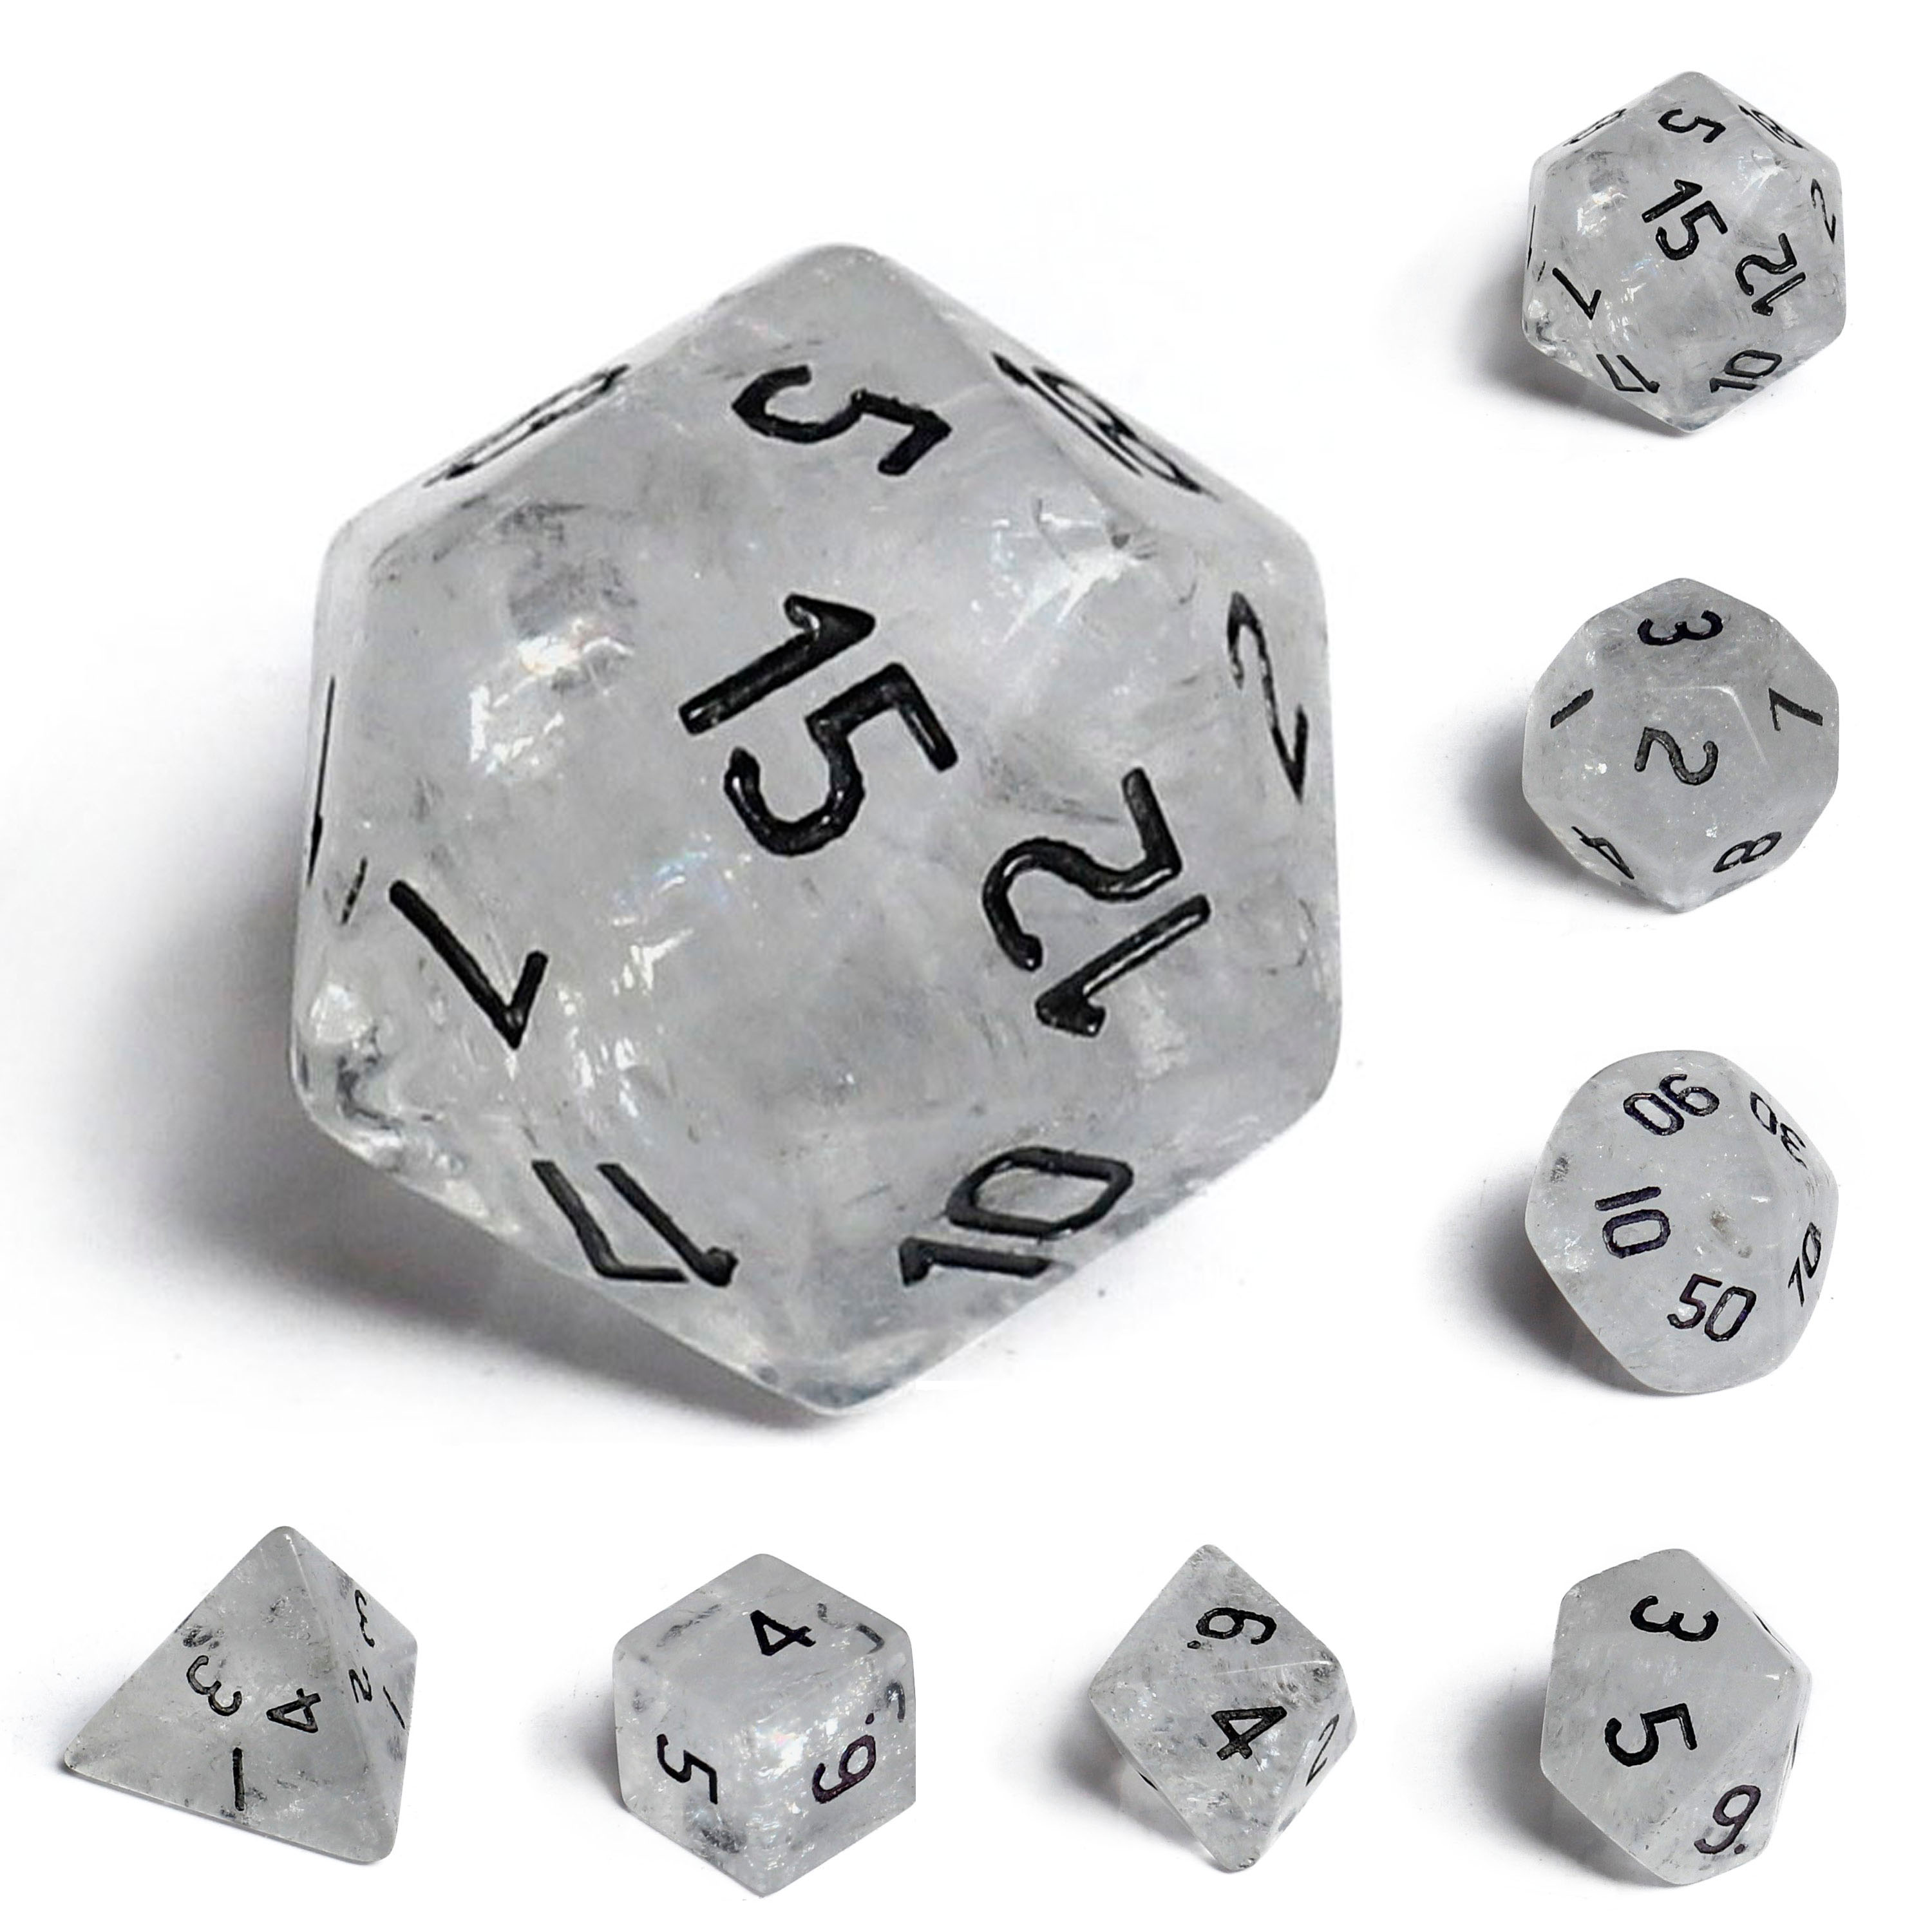 Engraved Clear Quartz Gemstone Dice Dungeons Dragons DND RPG 7 Piece Set